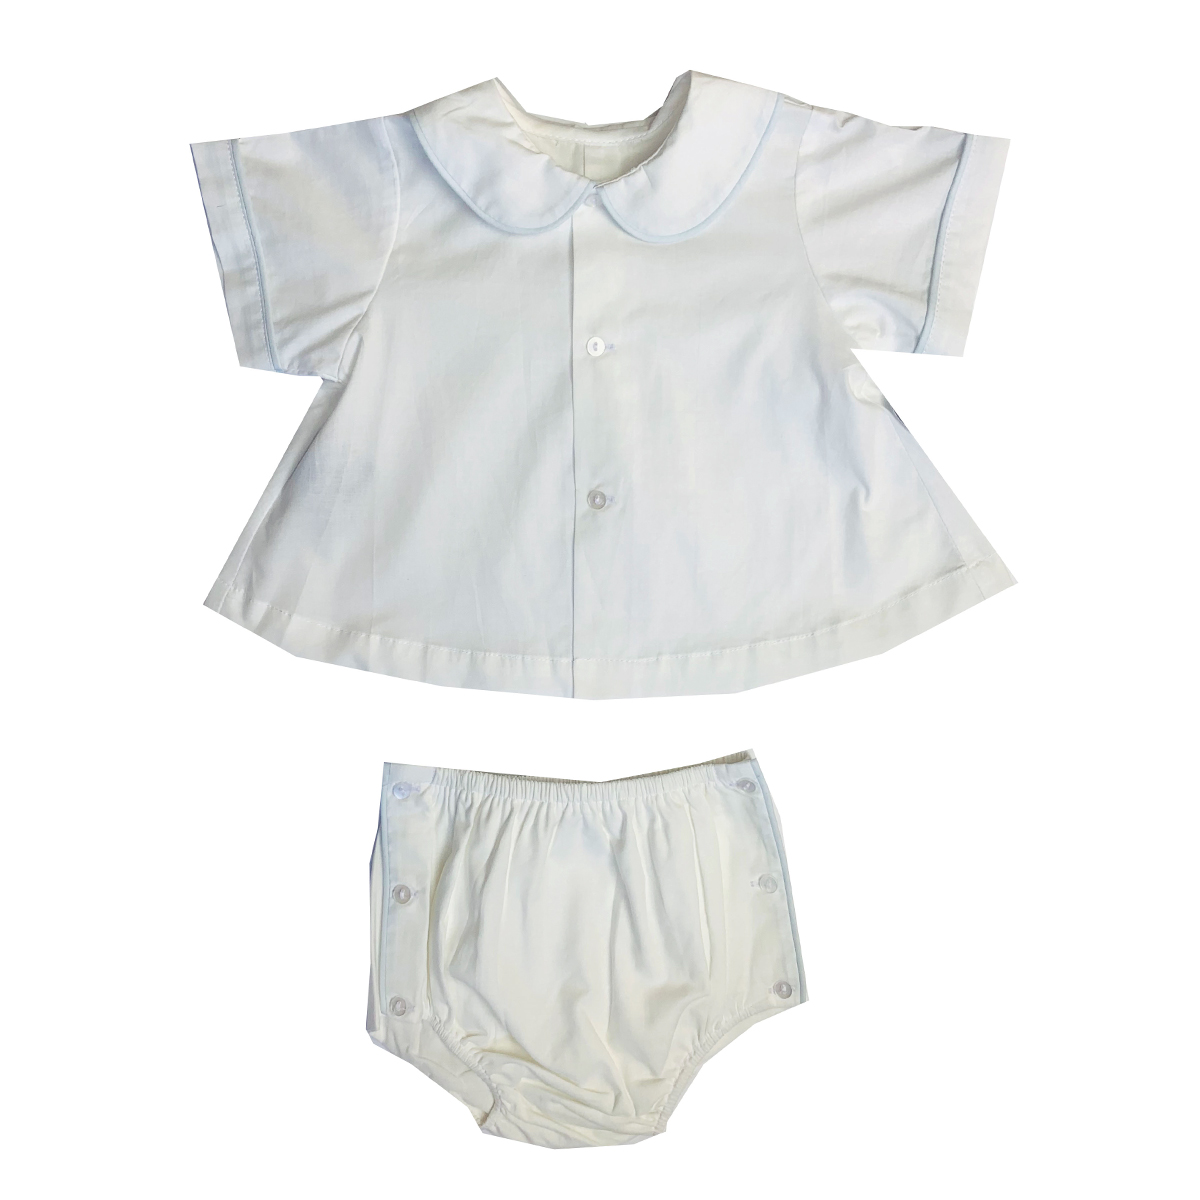 Lullaby Set Top & Diaper Cover set in White with Blue Piping